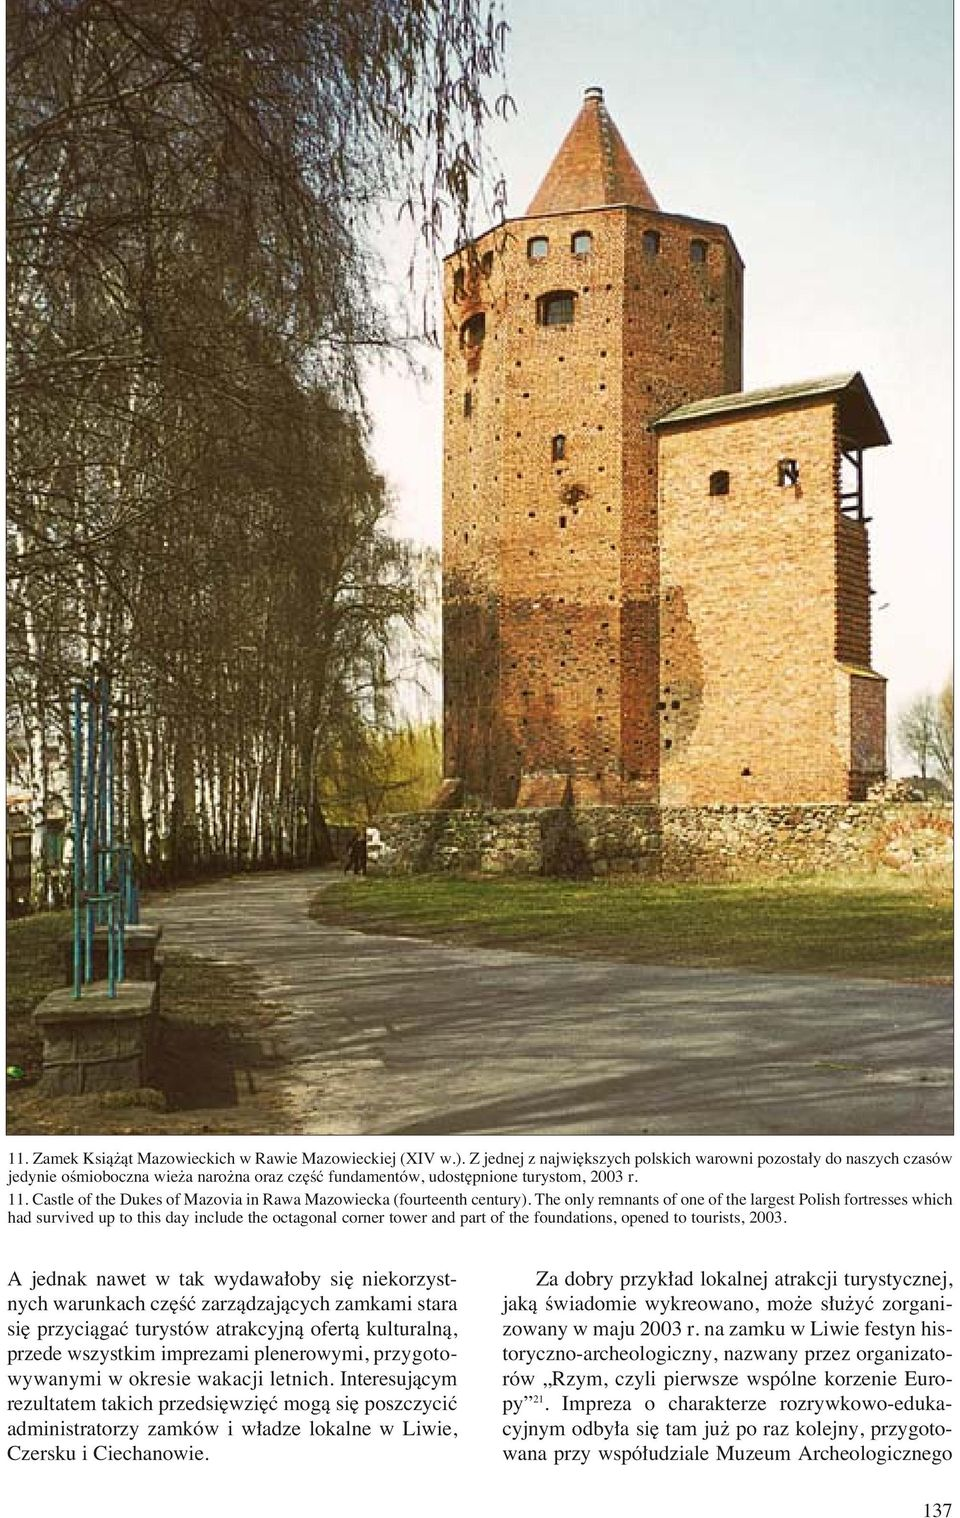 Castle of the Dukes of Mazovia in Rawa Mazowiecka (fourteenth century).